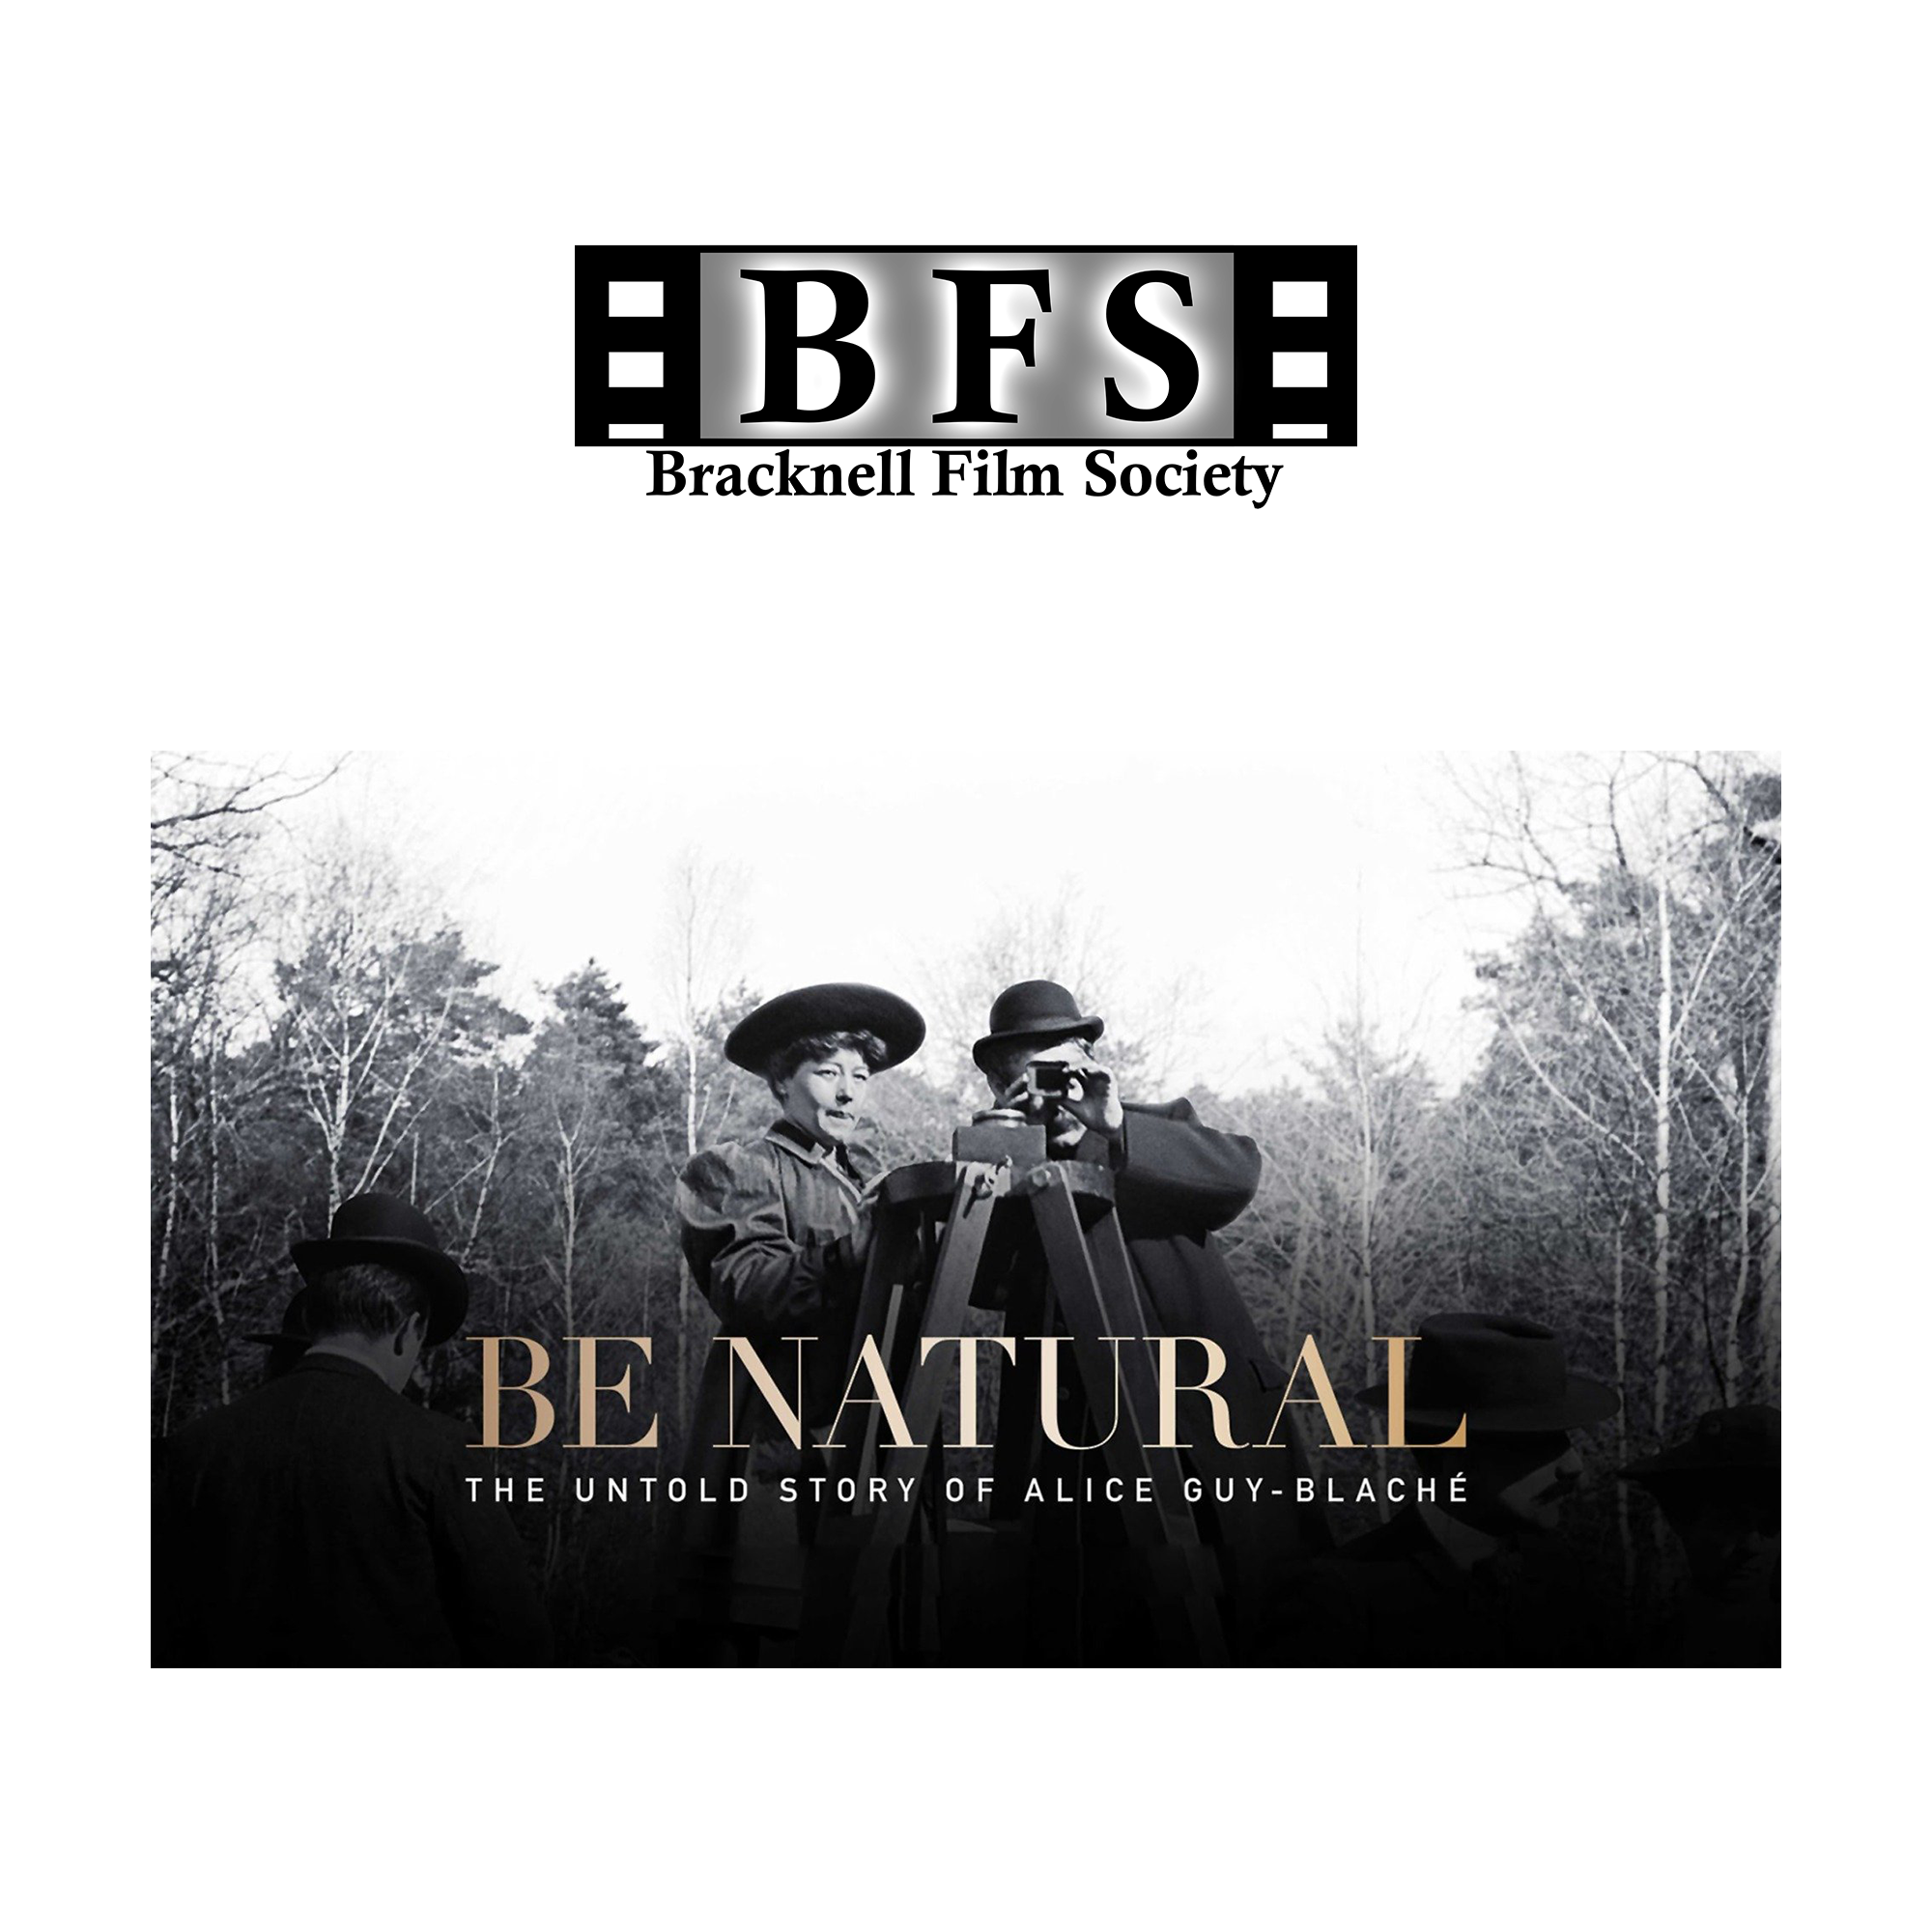 Be Natural: The Untold Story of Alice Guy-Blaché at Bracknell Film Society